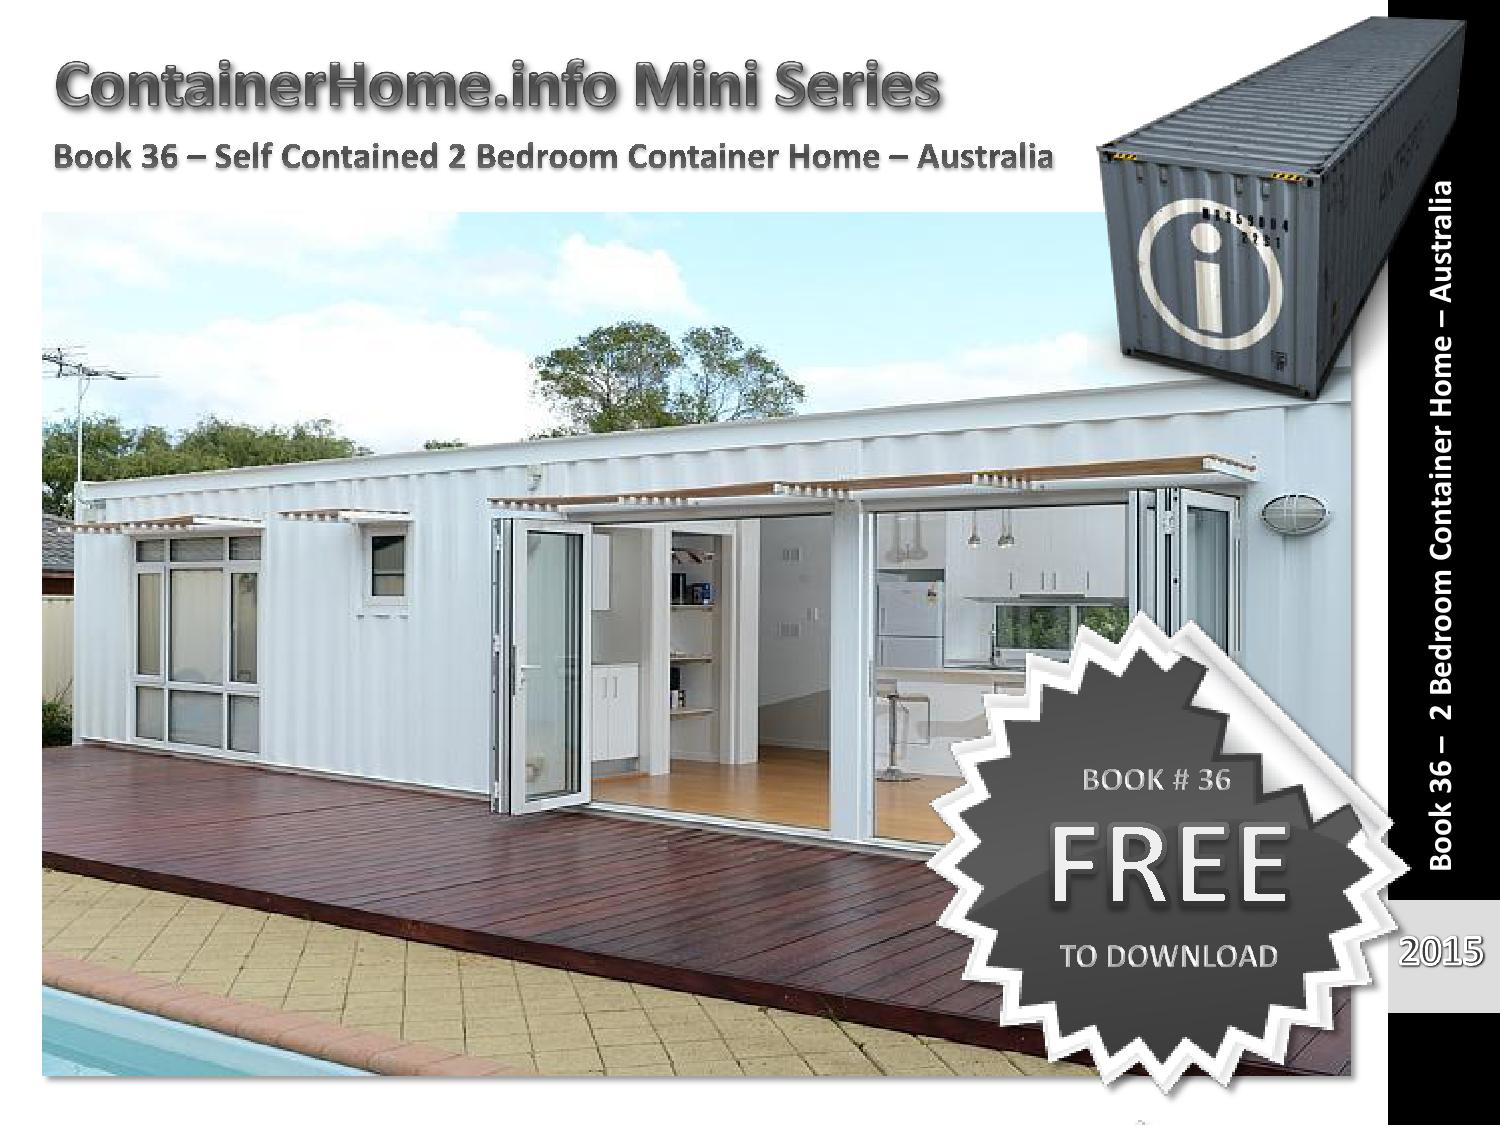 Shipping container homes book 36 by shippingcontainerhomes - Shipping container home design kit download ...